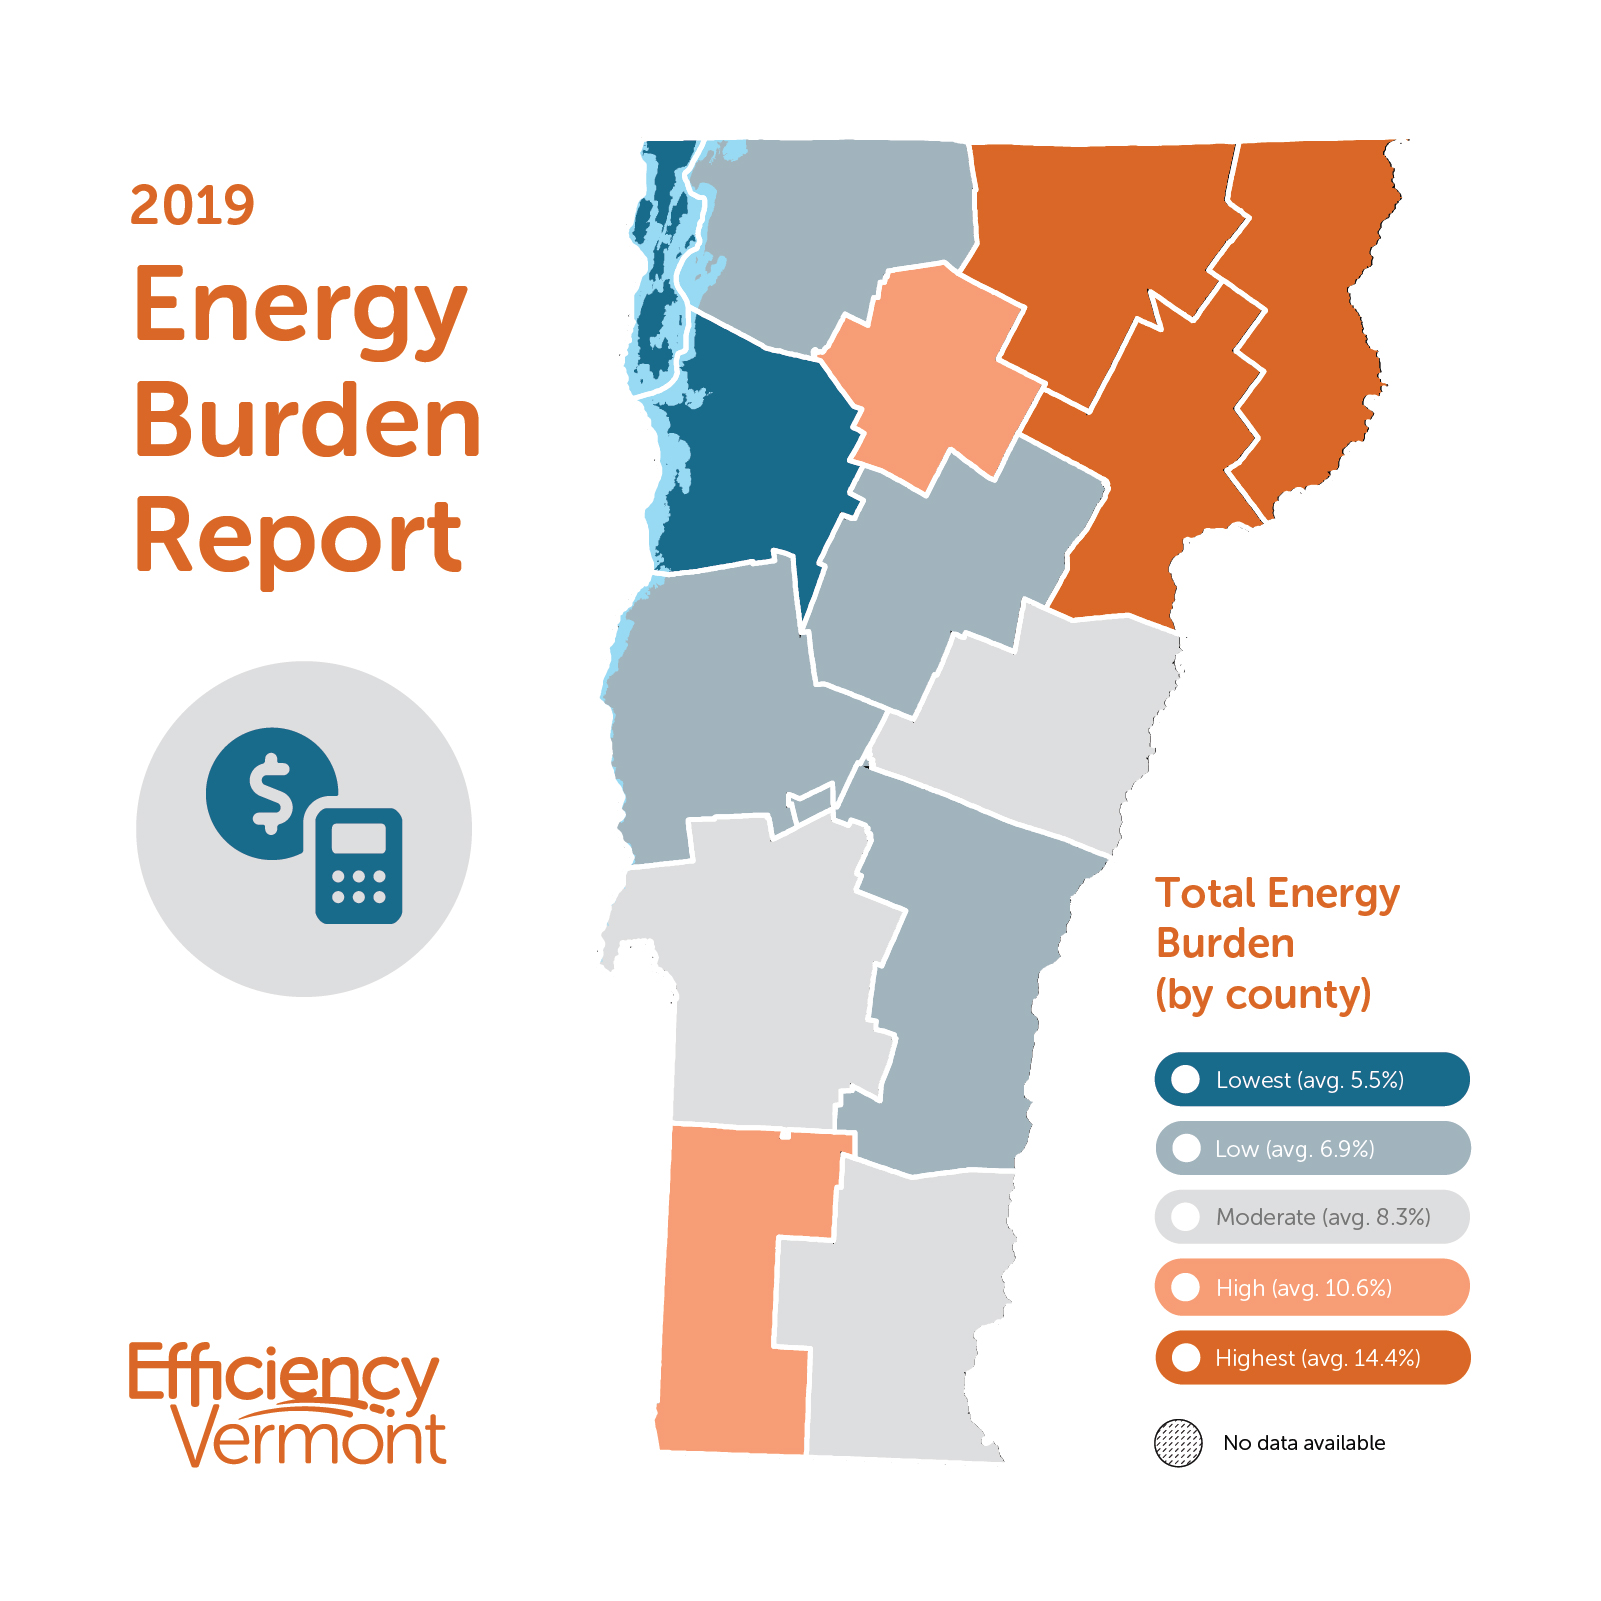 Total Energy Burden by County graphic